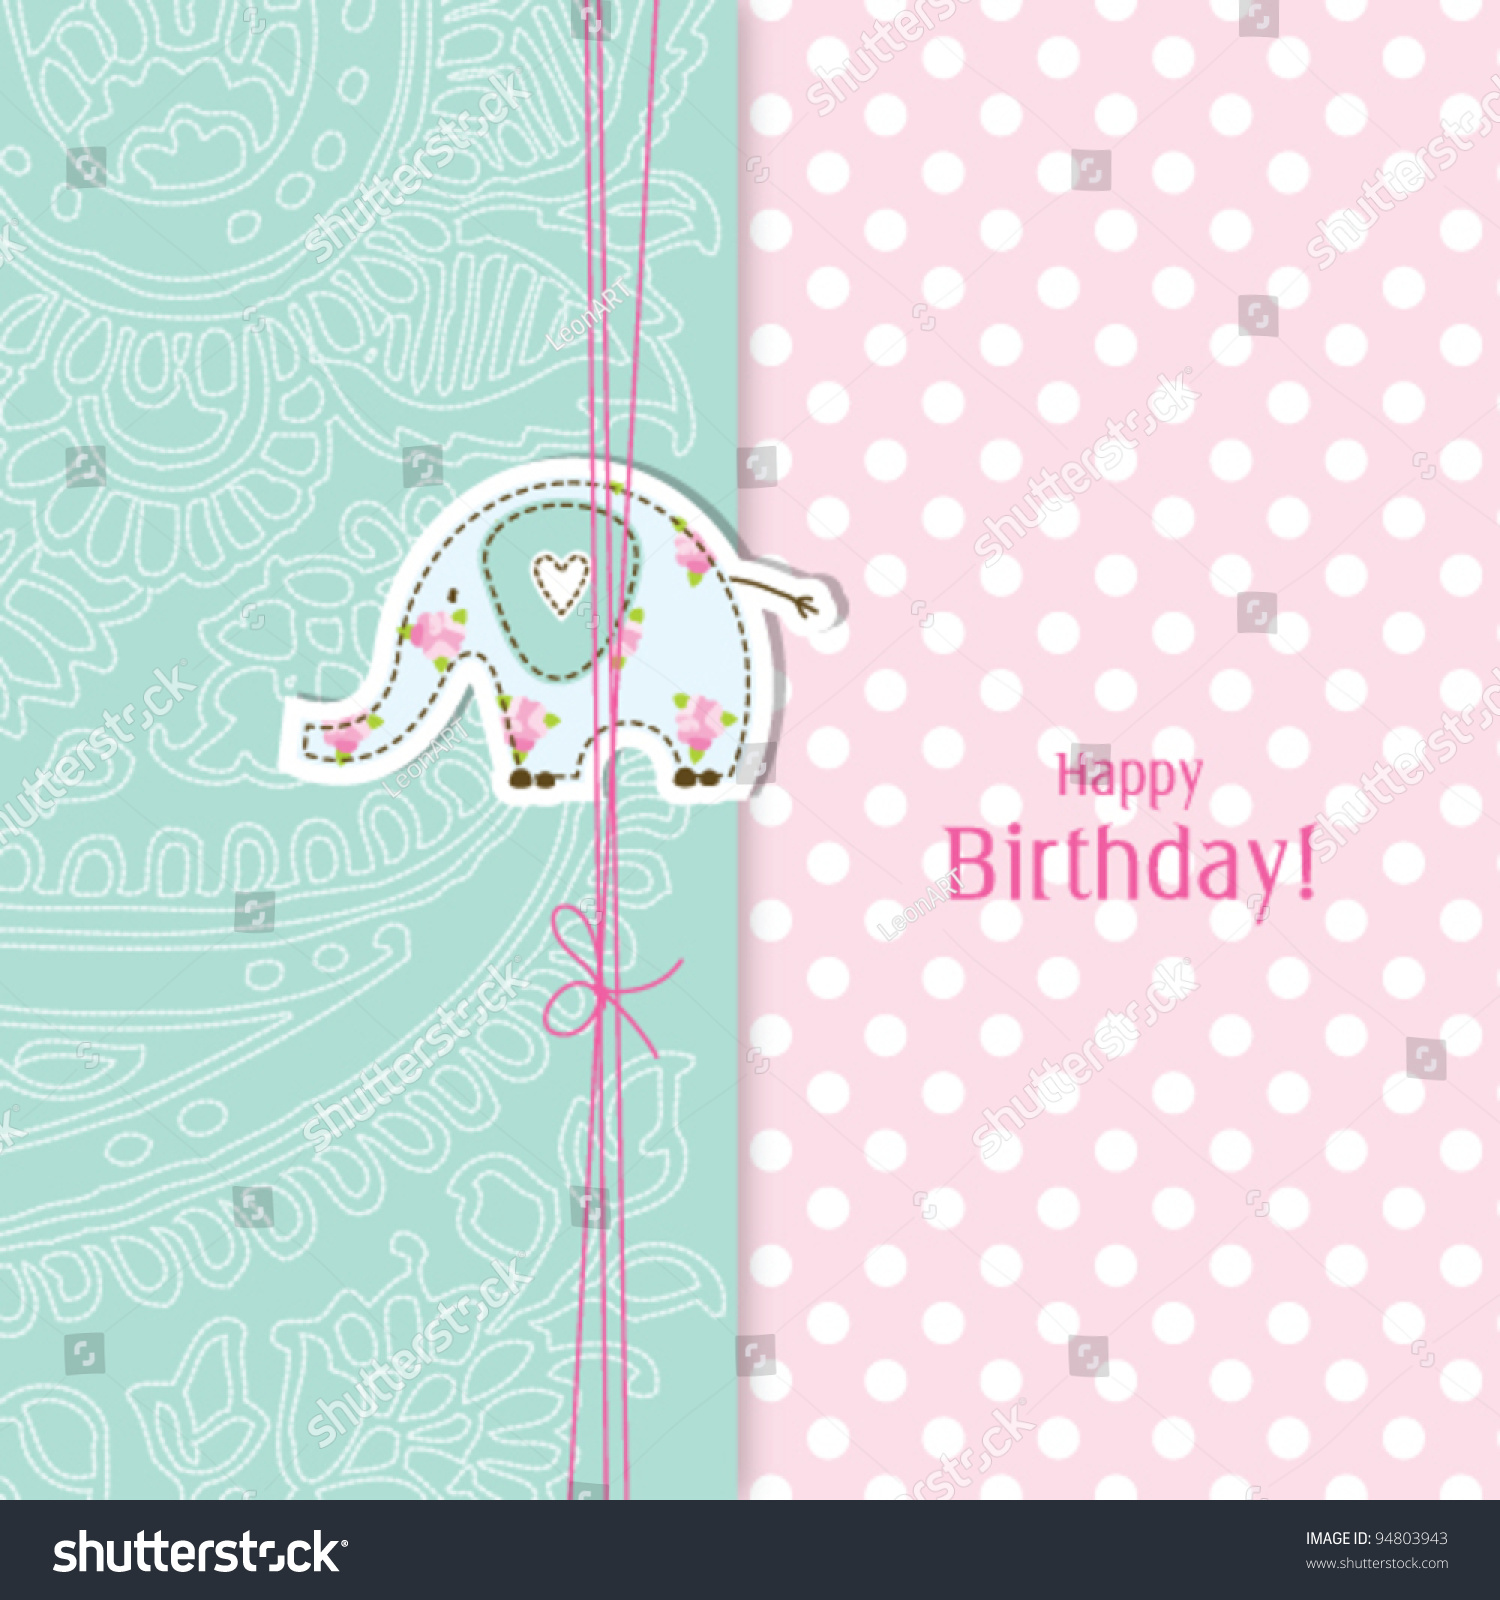 Birthday Card Template in PSD